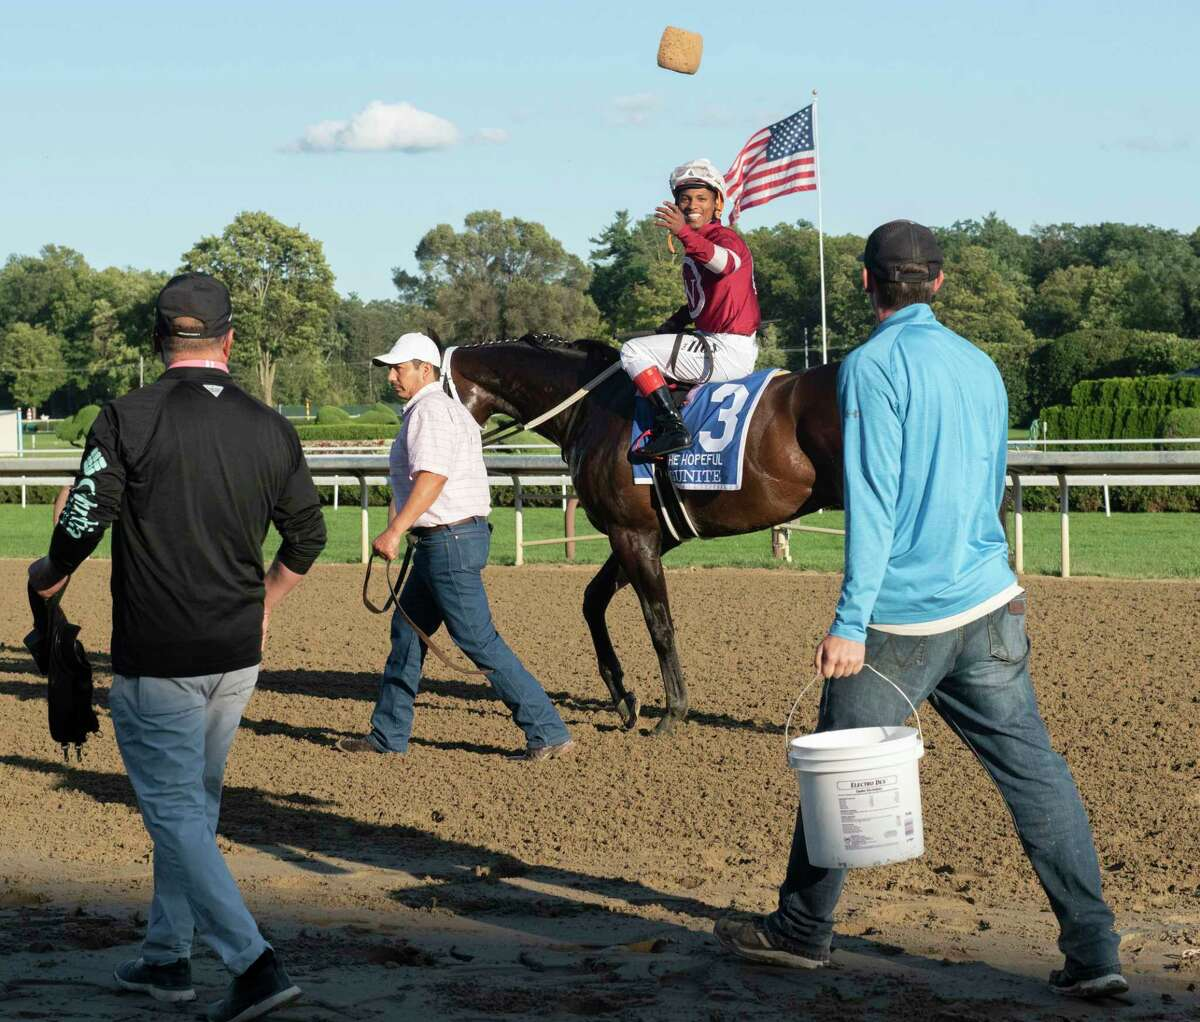 Jockey Ricardo Santana, Jr. throws a sponge to a worker after cooling Gunite who crossed the finish line in first place during The Hopeful feature race at Saratoga Race Course on Monday, Sept. 6, 2021 in Saratoga Springs, N.Y. Today is the last day of the meet.